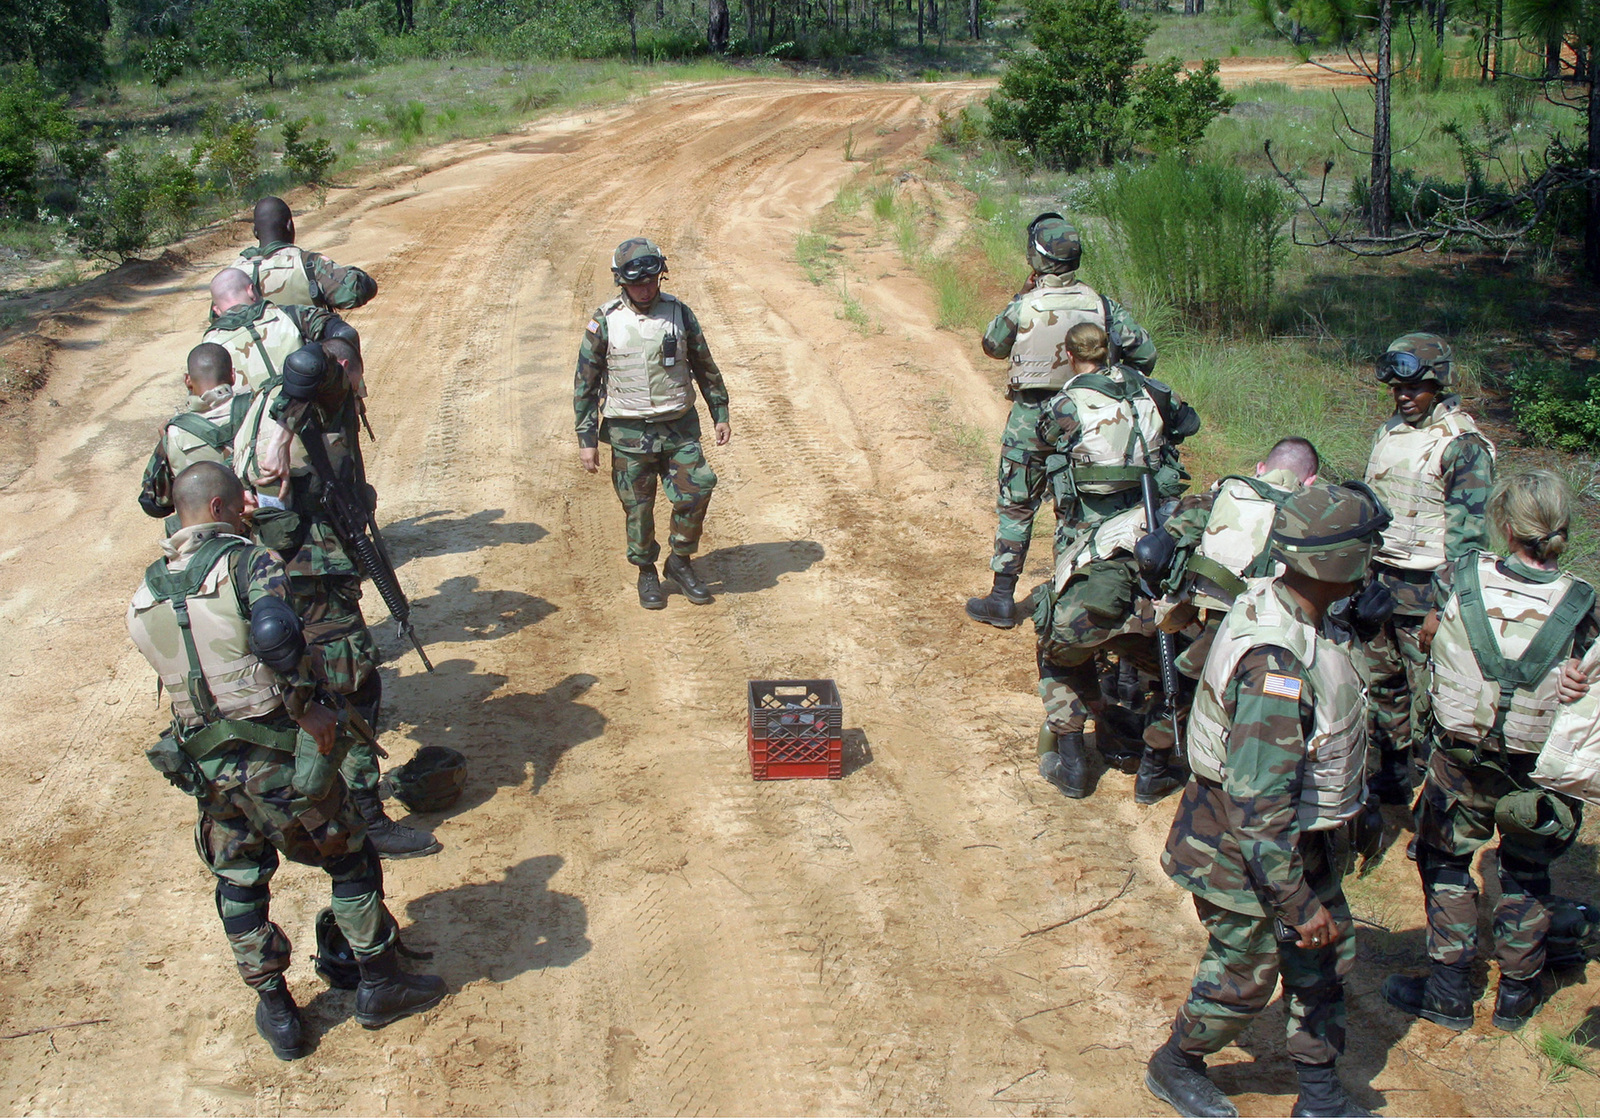 US Army (USA) Soldiers, wearing protective body armor and gear, stand in line to deposit empty 5.56 mm M16A2 rifle cartridge clips after participating a live-fire training exercise conducted at Fort Gordon, Georgia (GA)